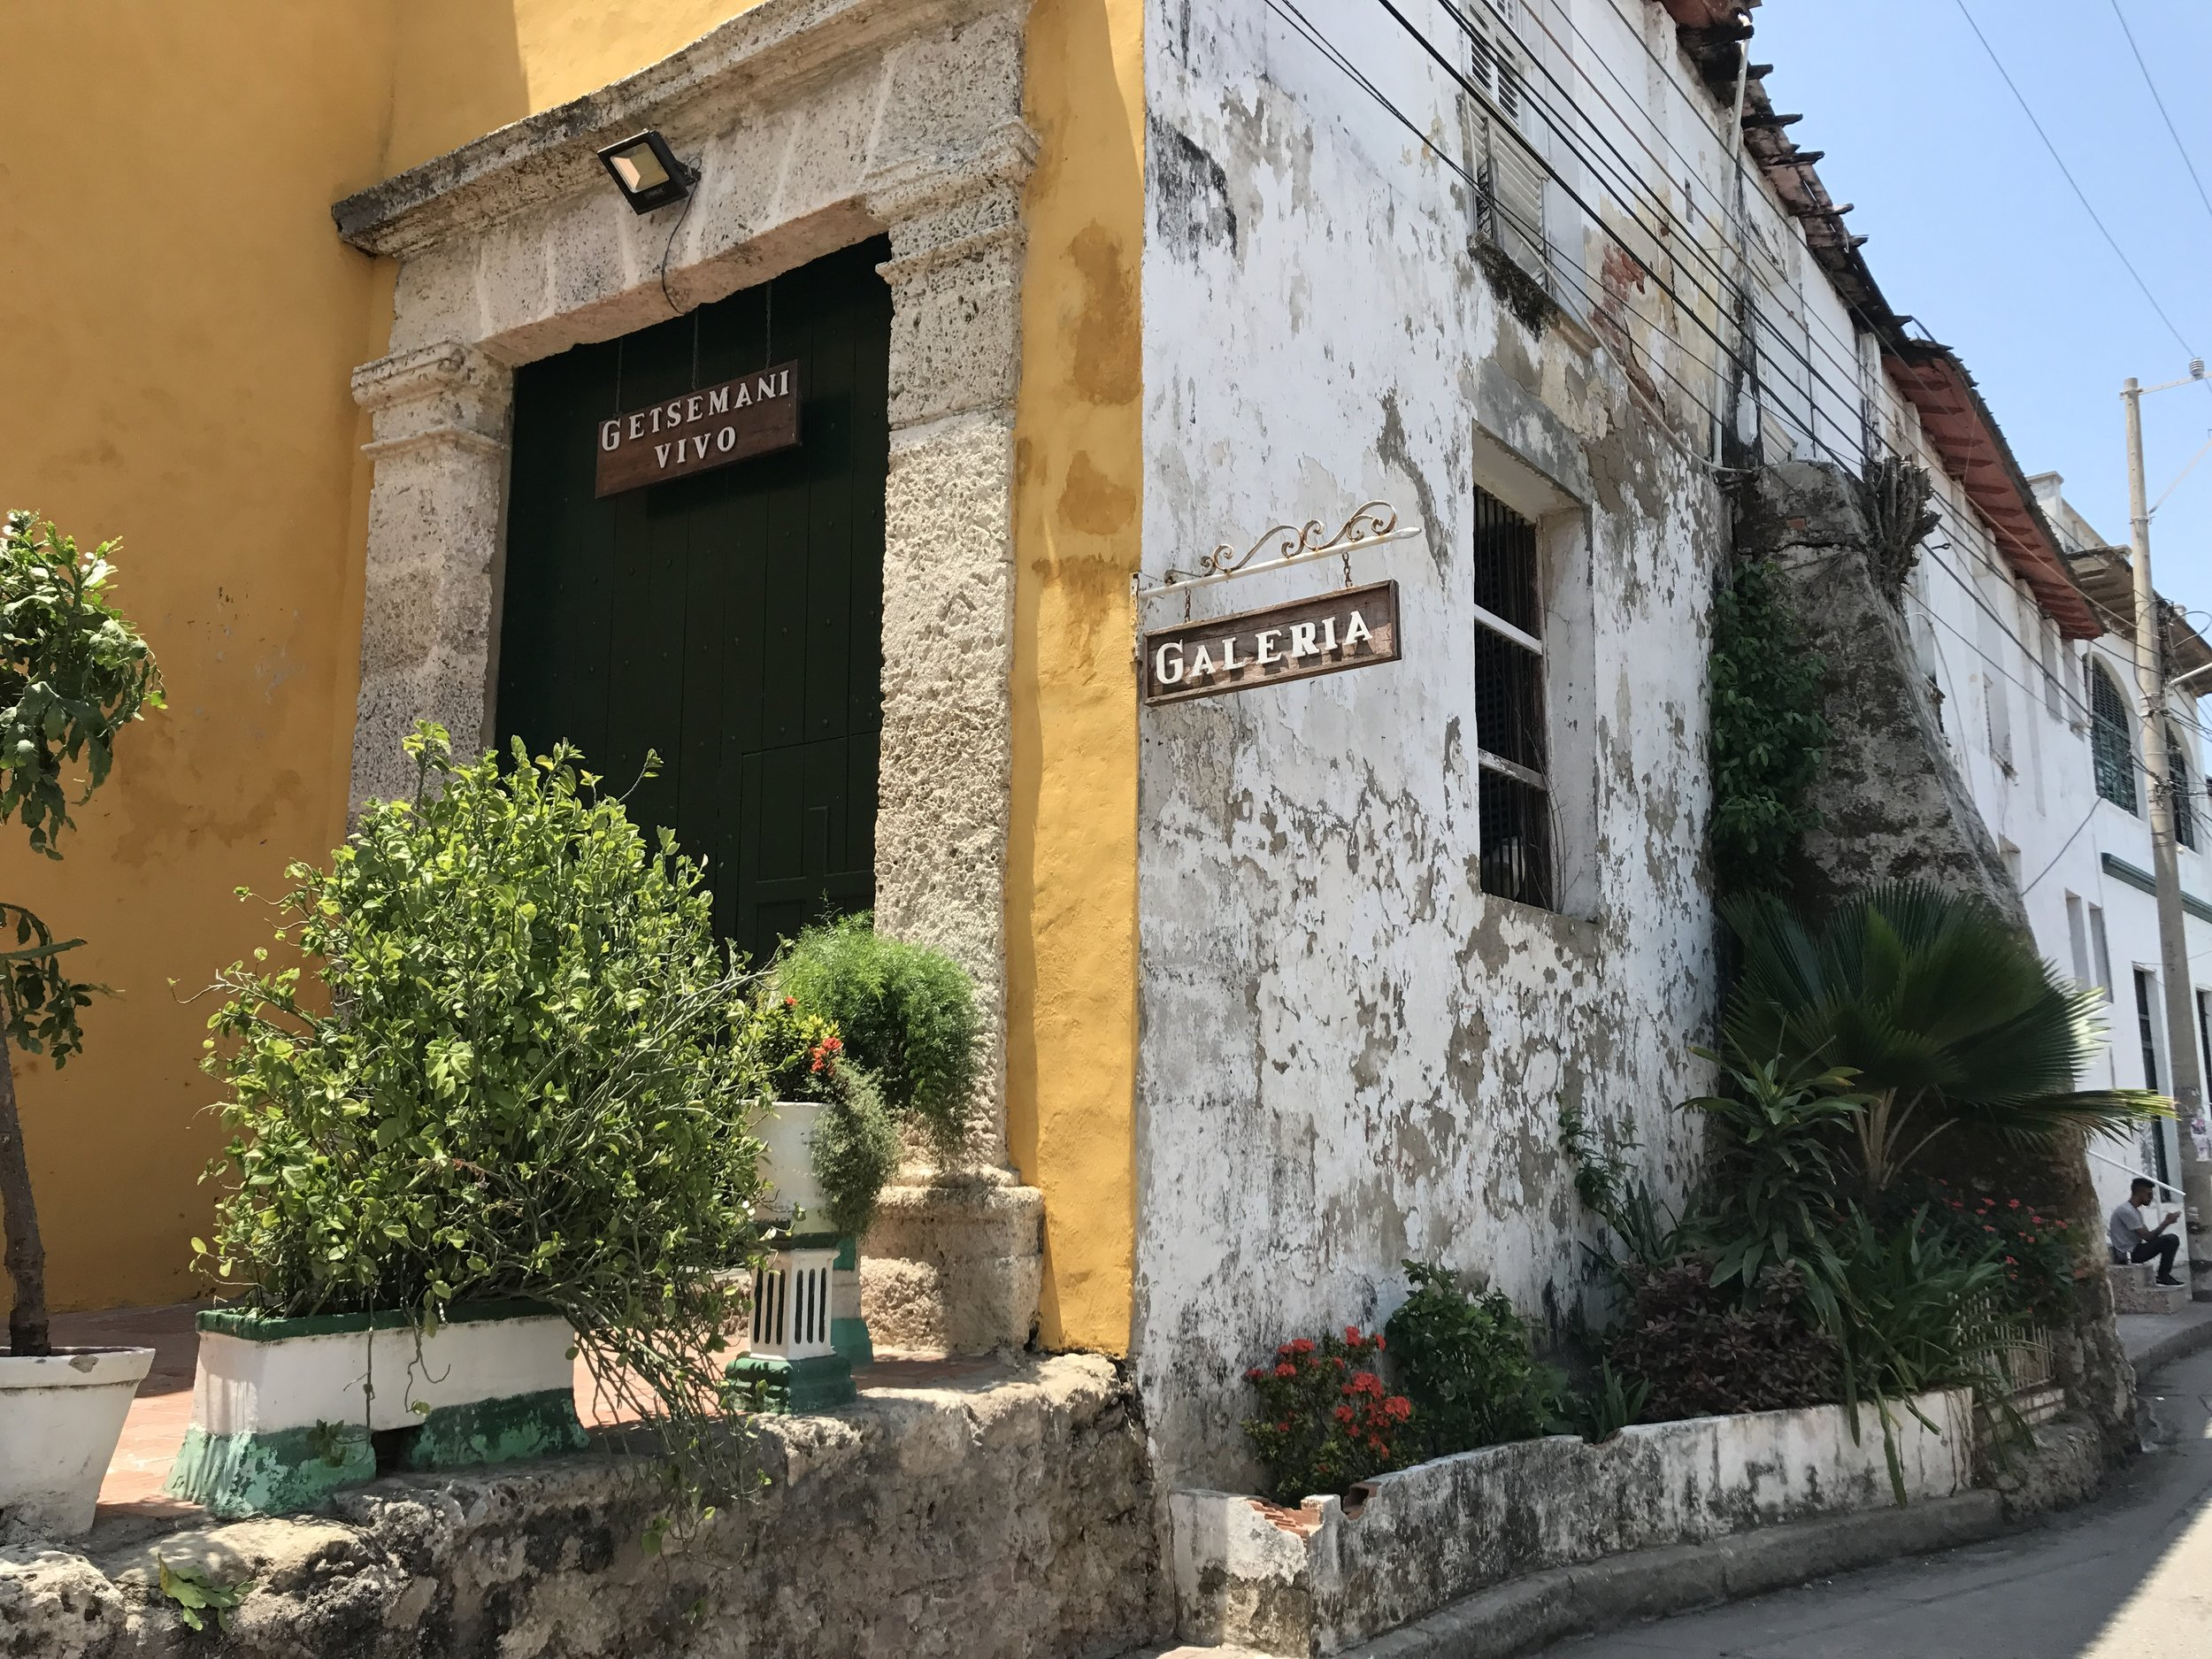 Getsemani travel guide